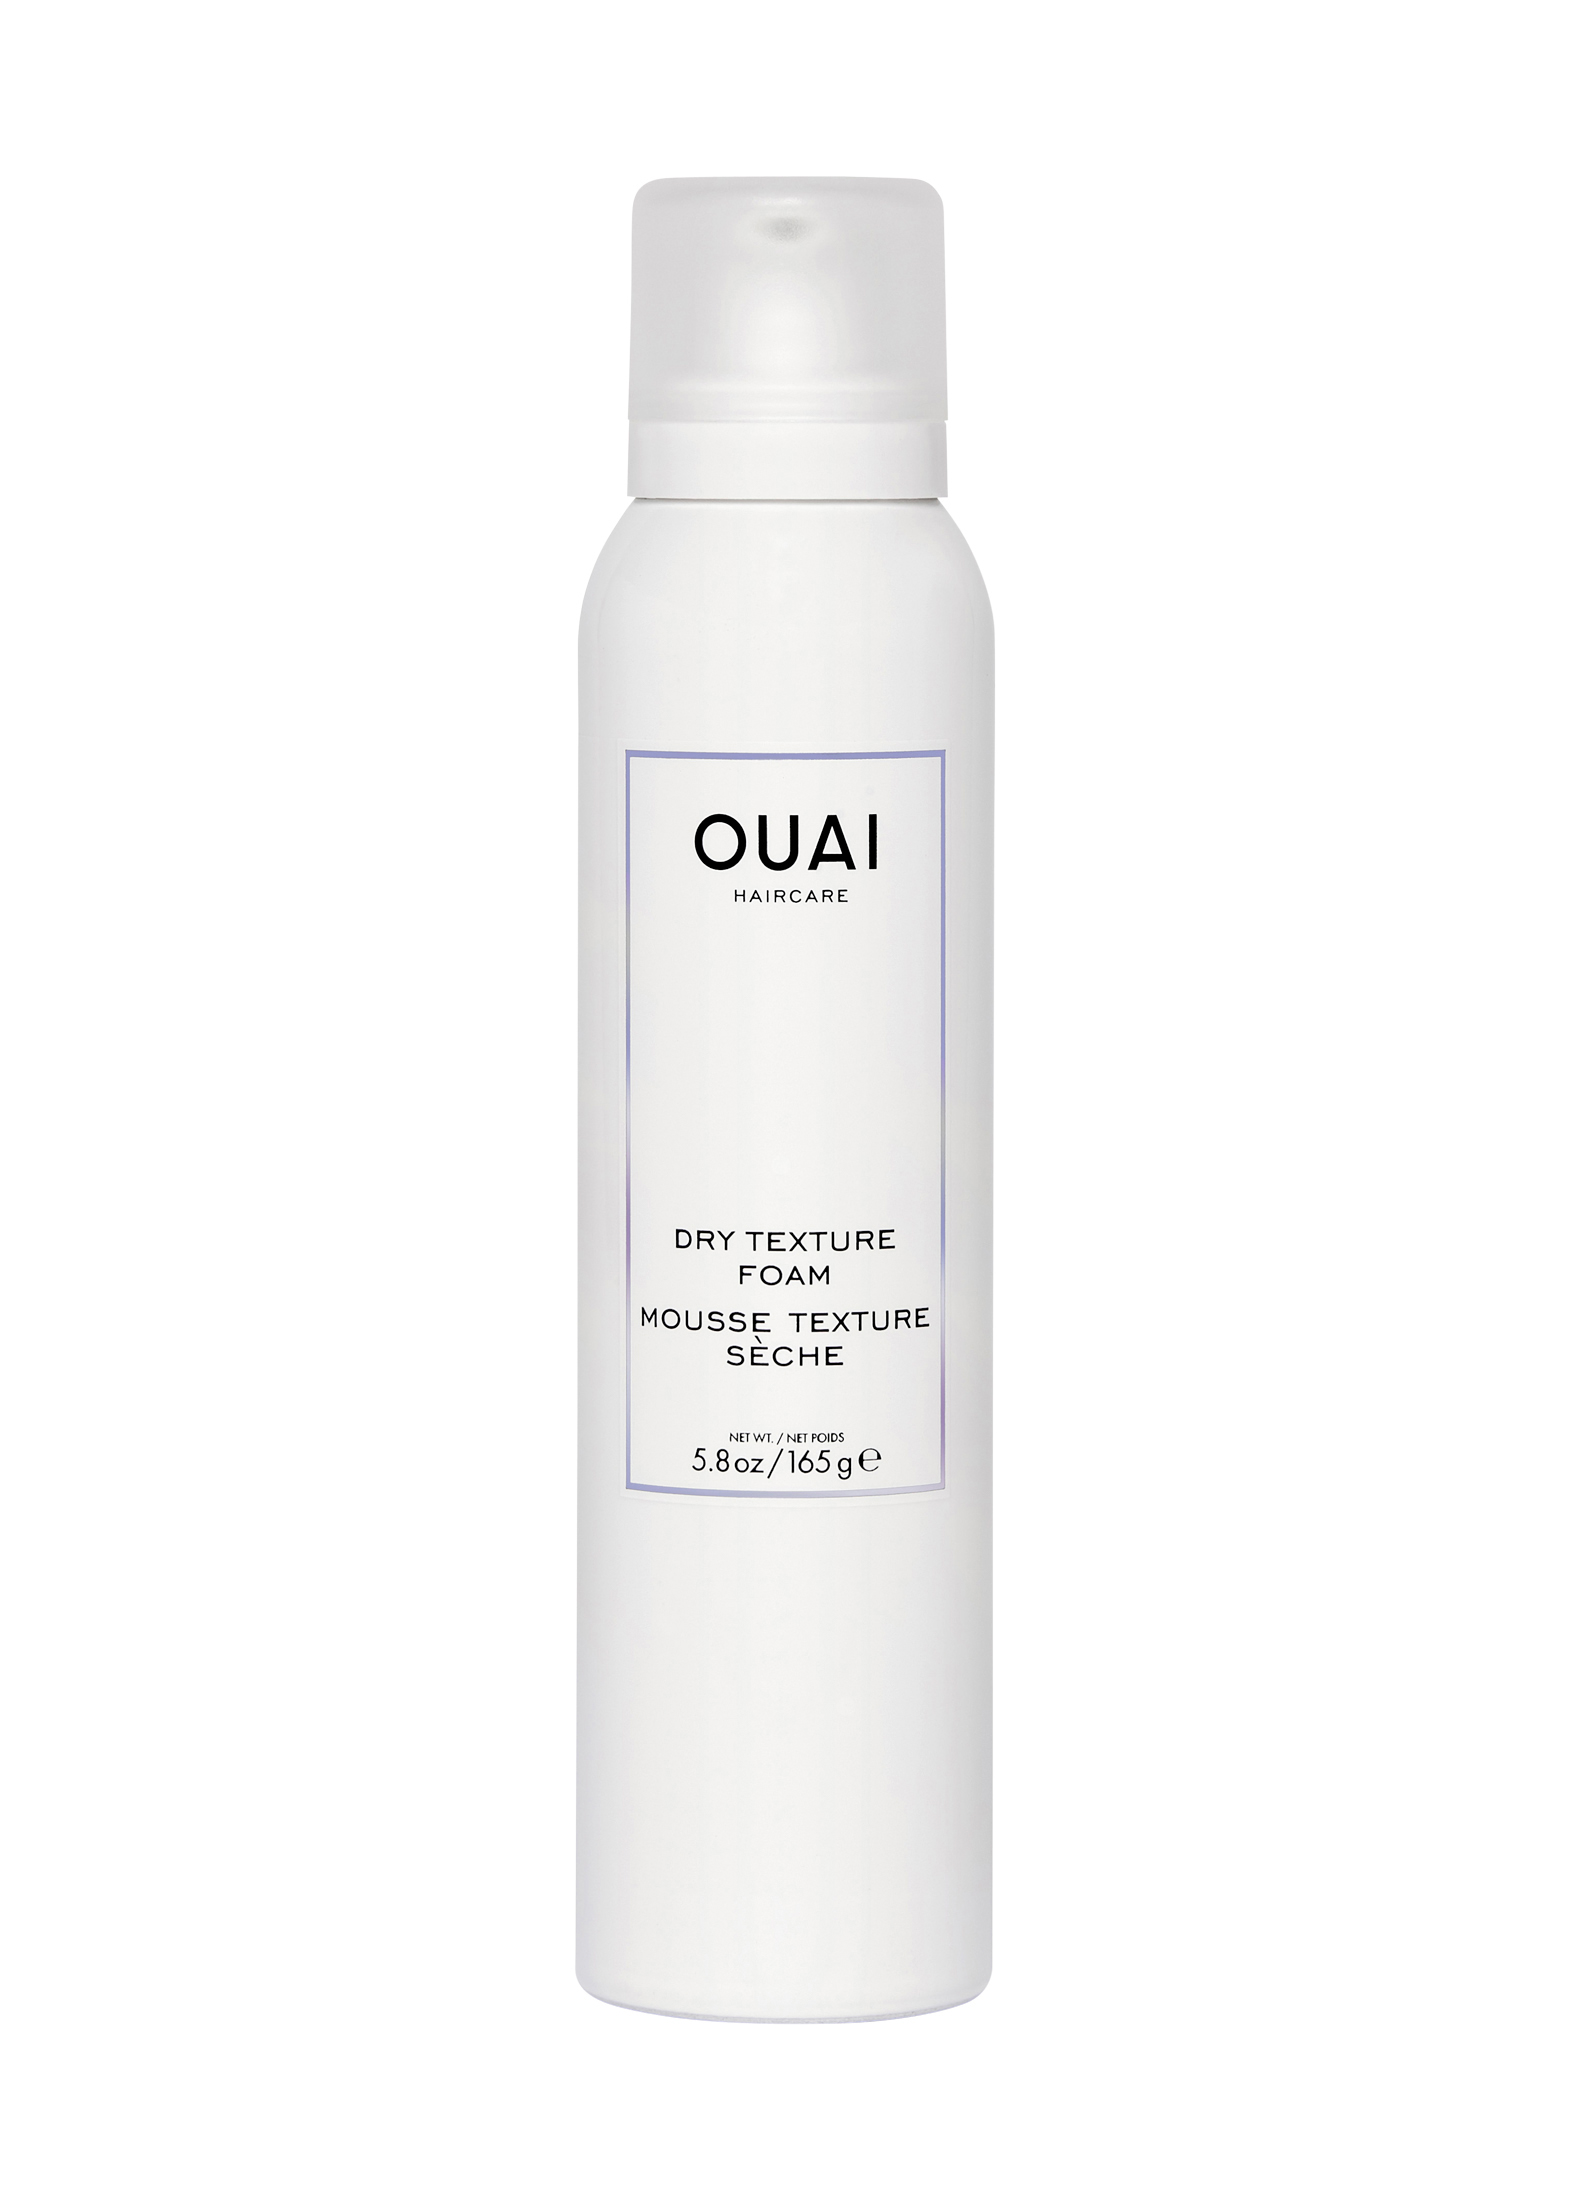 Ouai DRY TEXTURE FOAM 190g image number 0